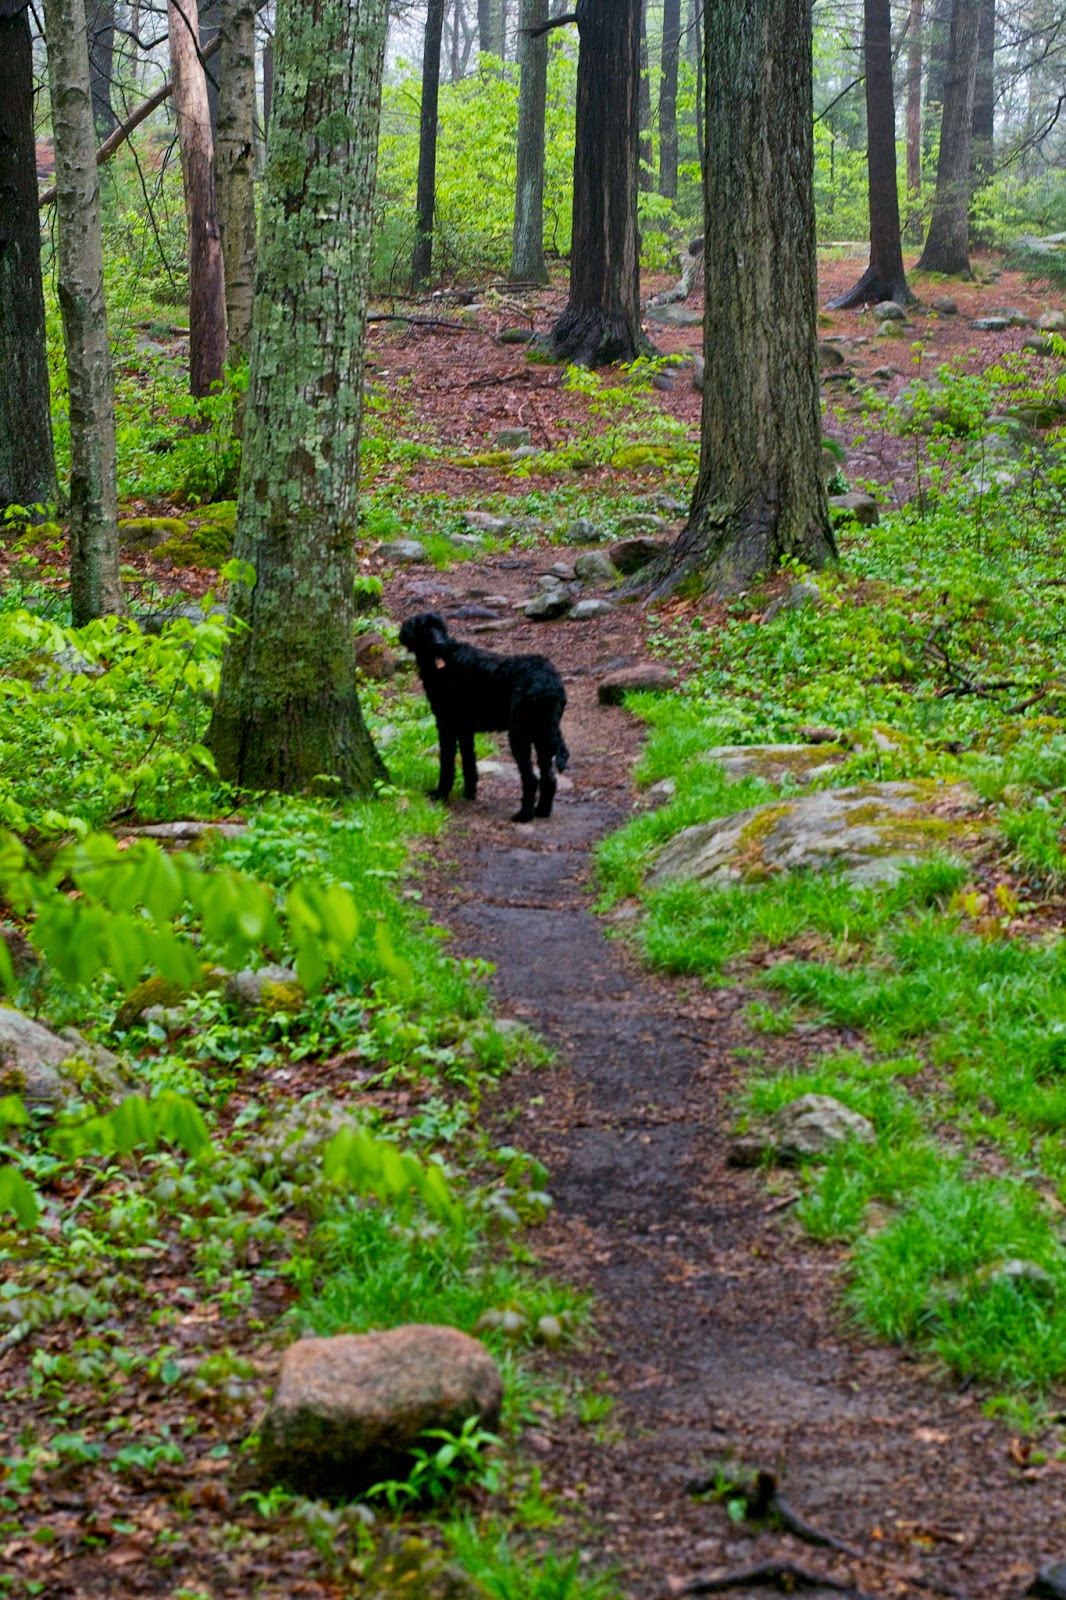 Veda waiting ahead on the trail.